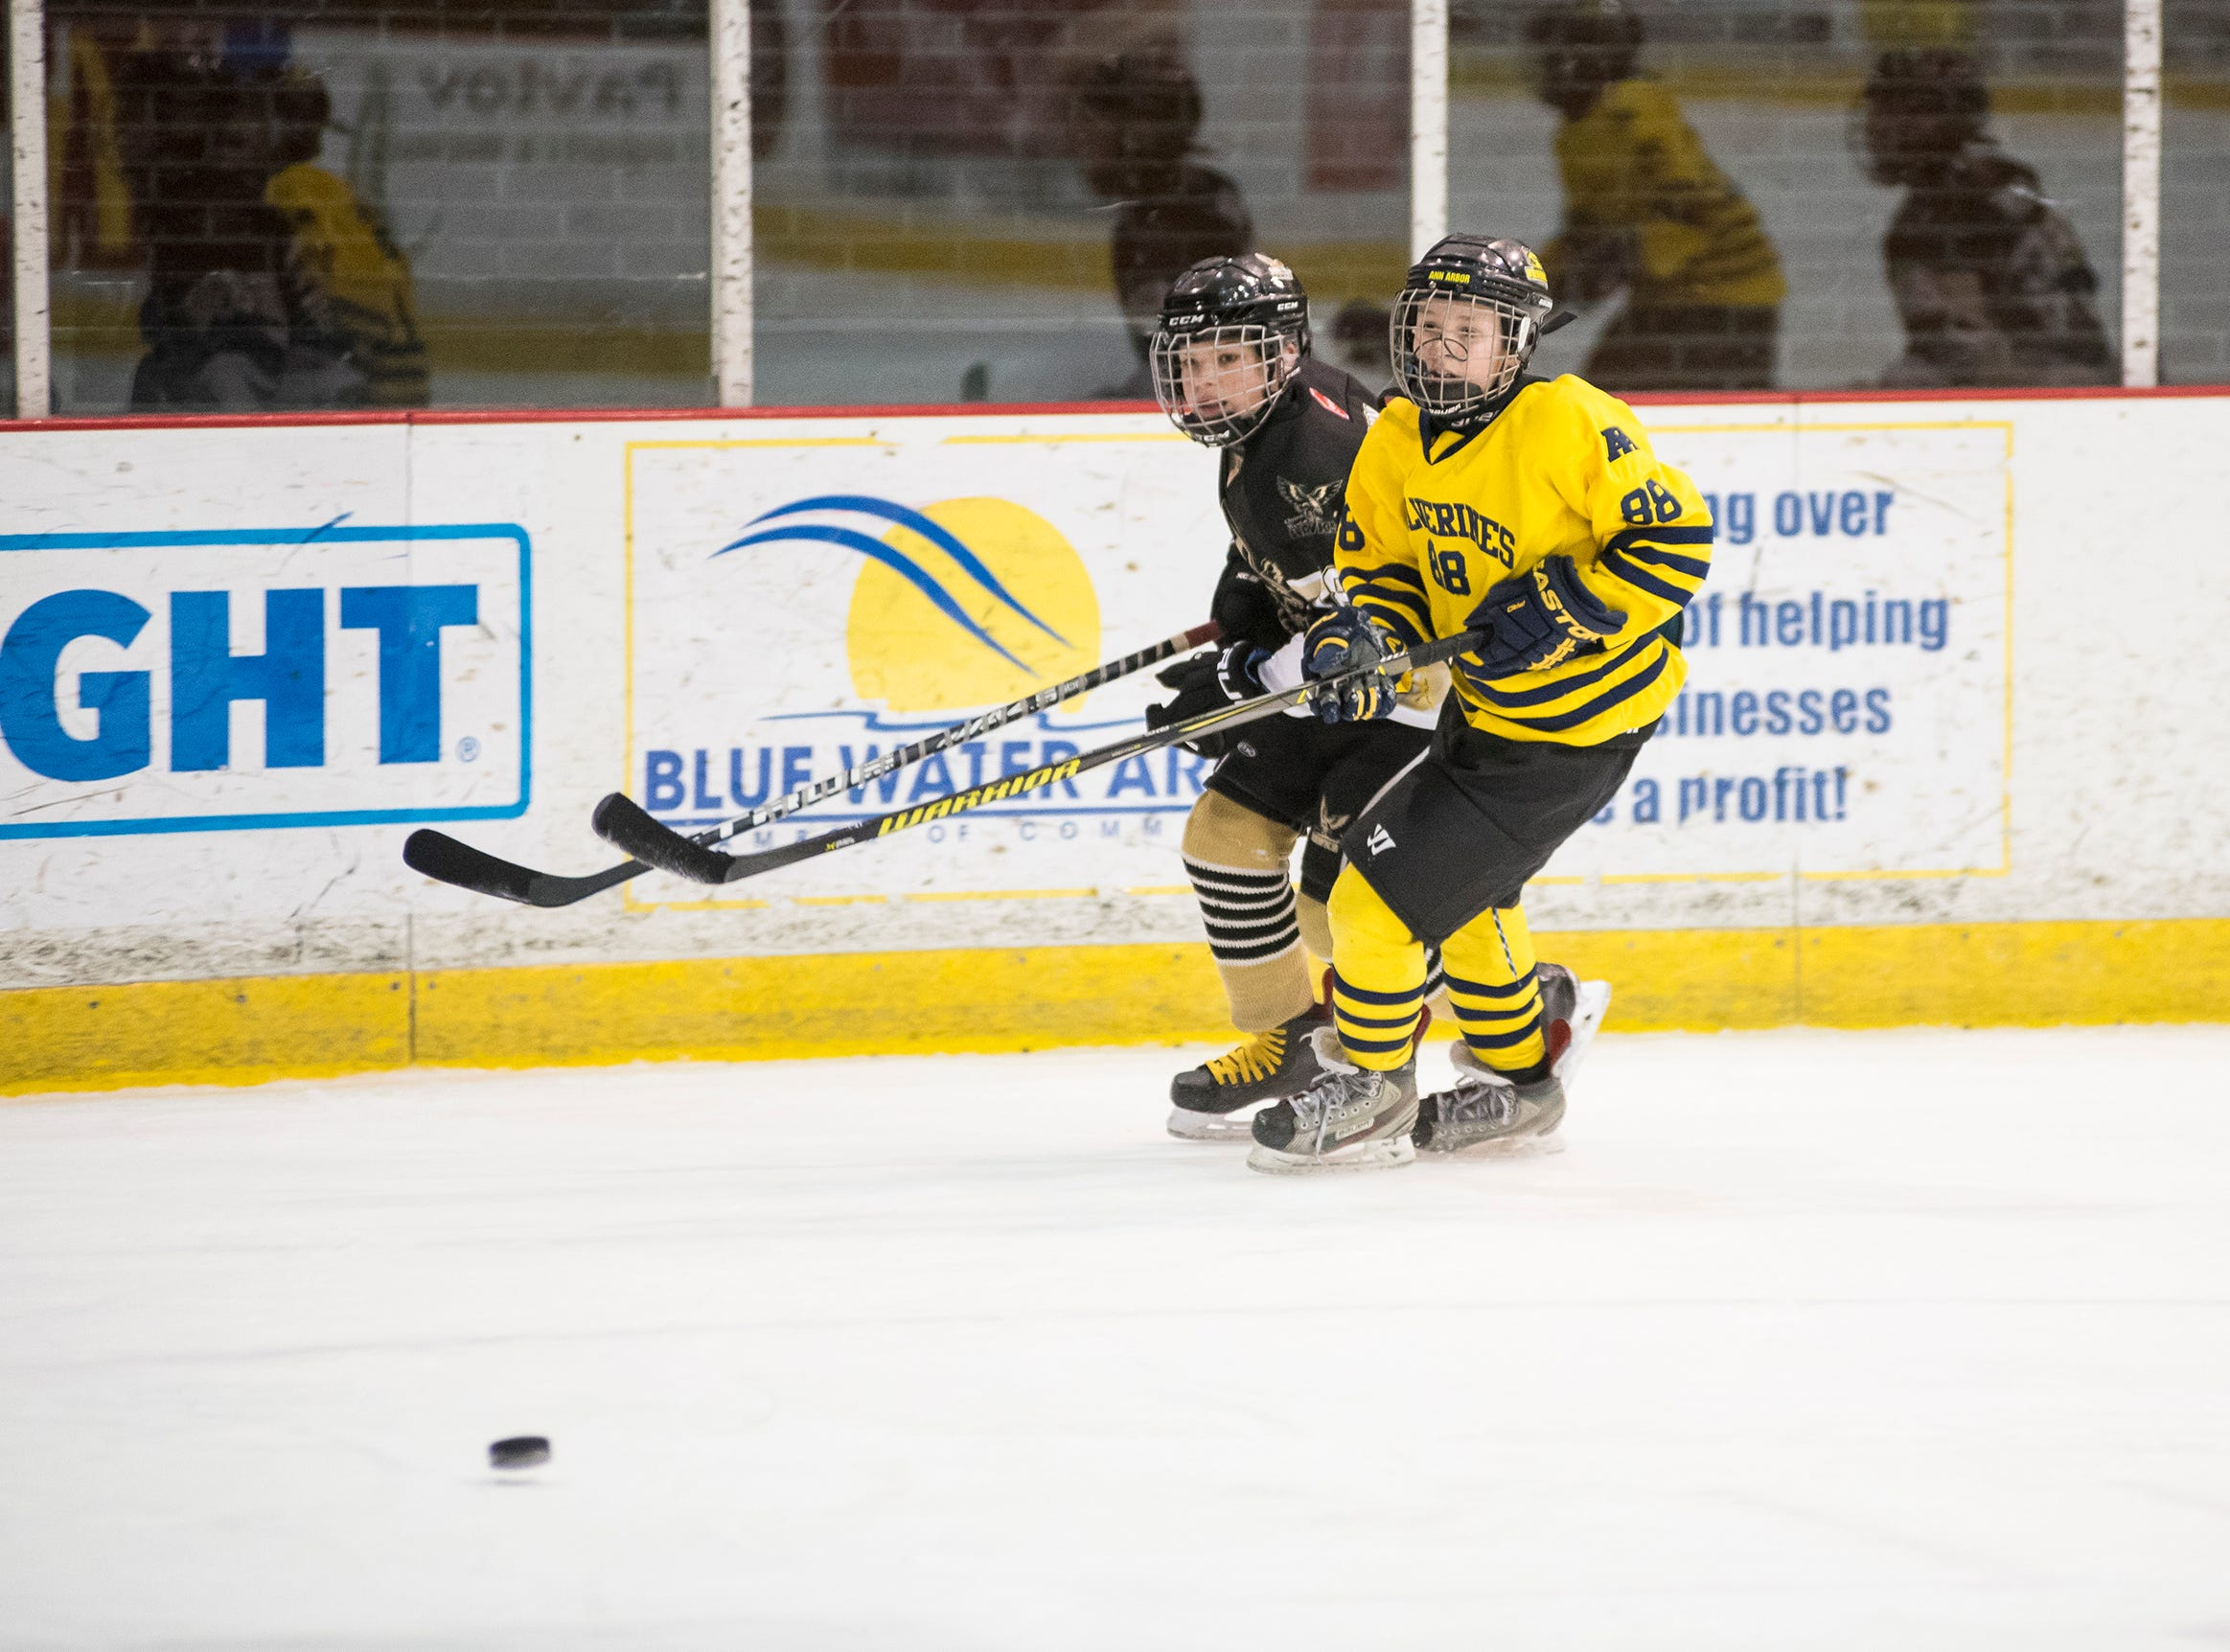 Ann Arbor Wolverines forward Tyson Jacobs (88) and Quinte West Hawks forward Bryce Davy skate after the puck during their Silver Stick Finals PWA match Thursday, Jan. 10, 2019 at McMorran Arena.